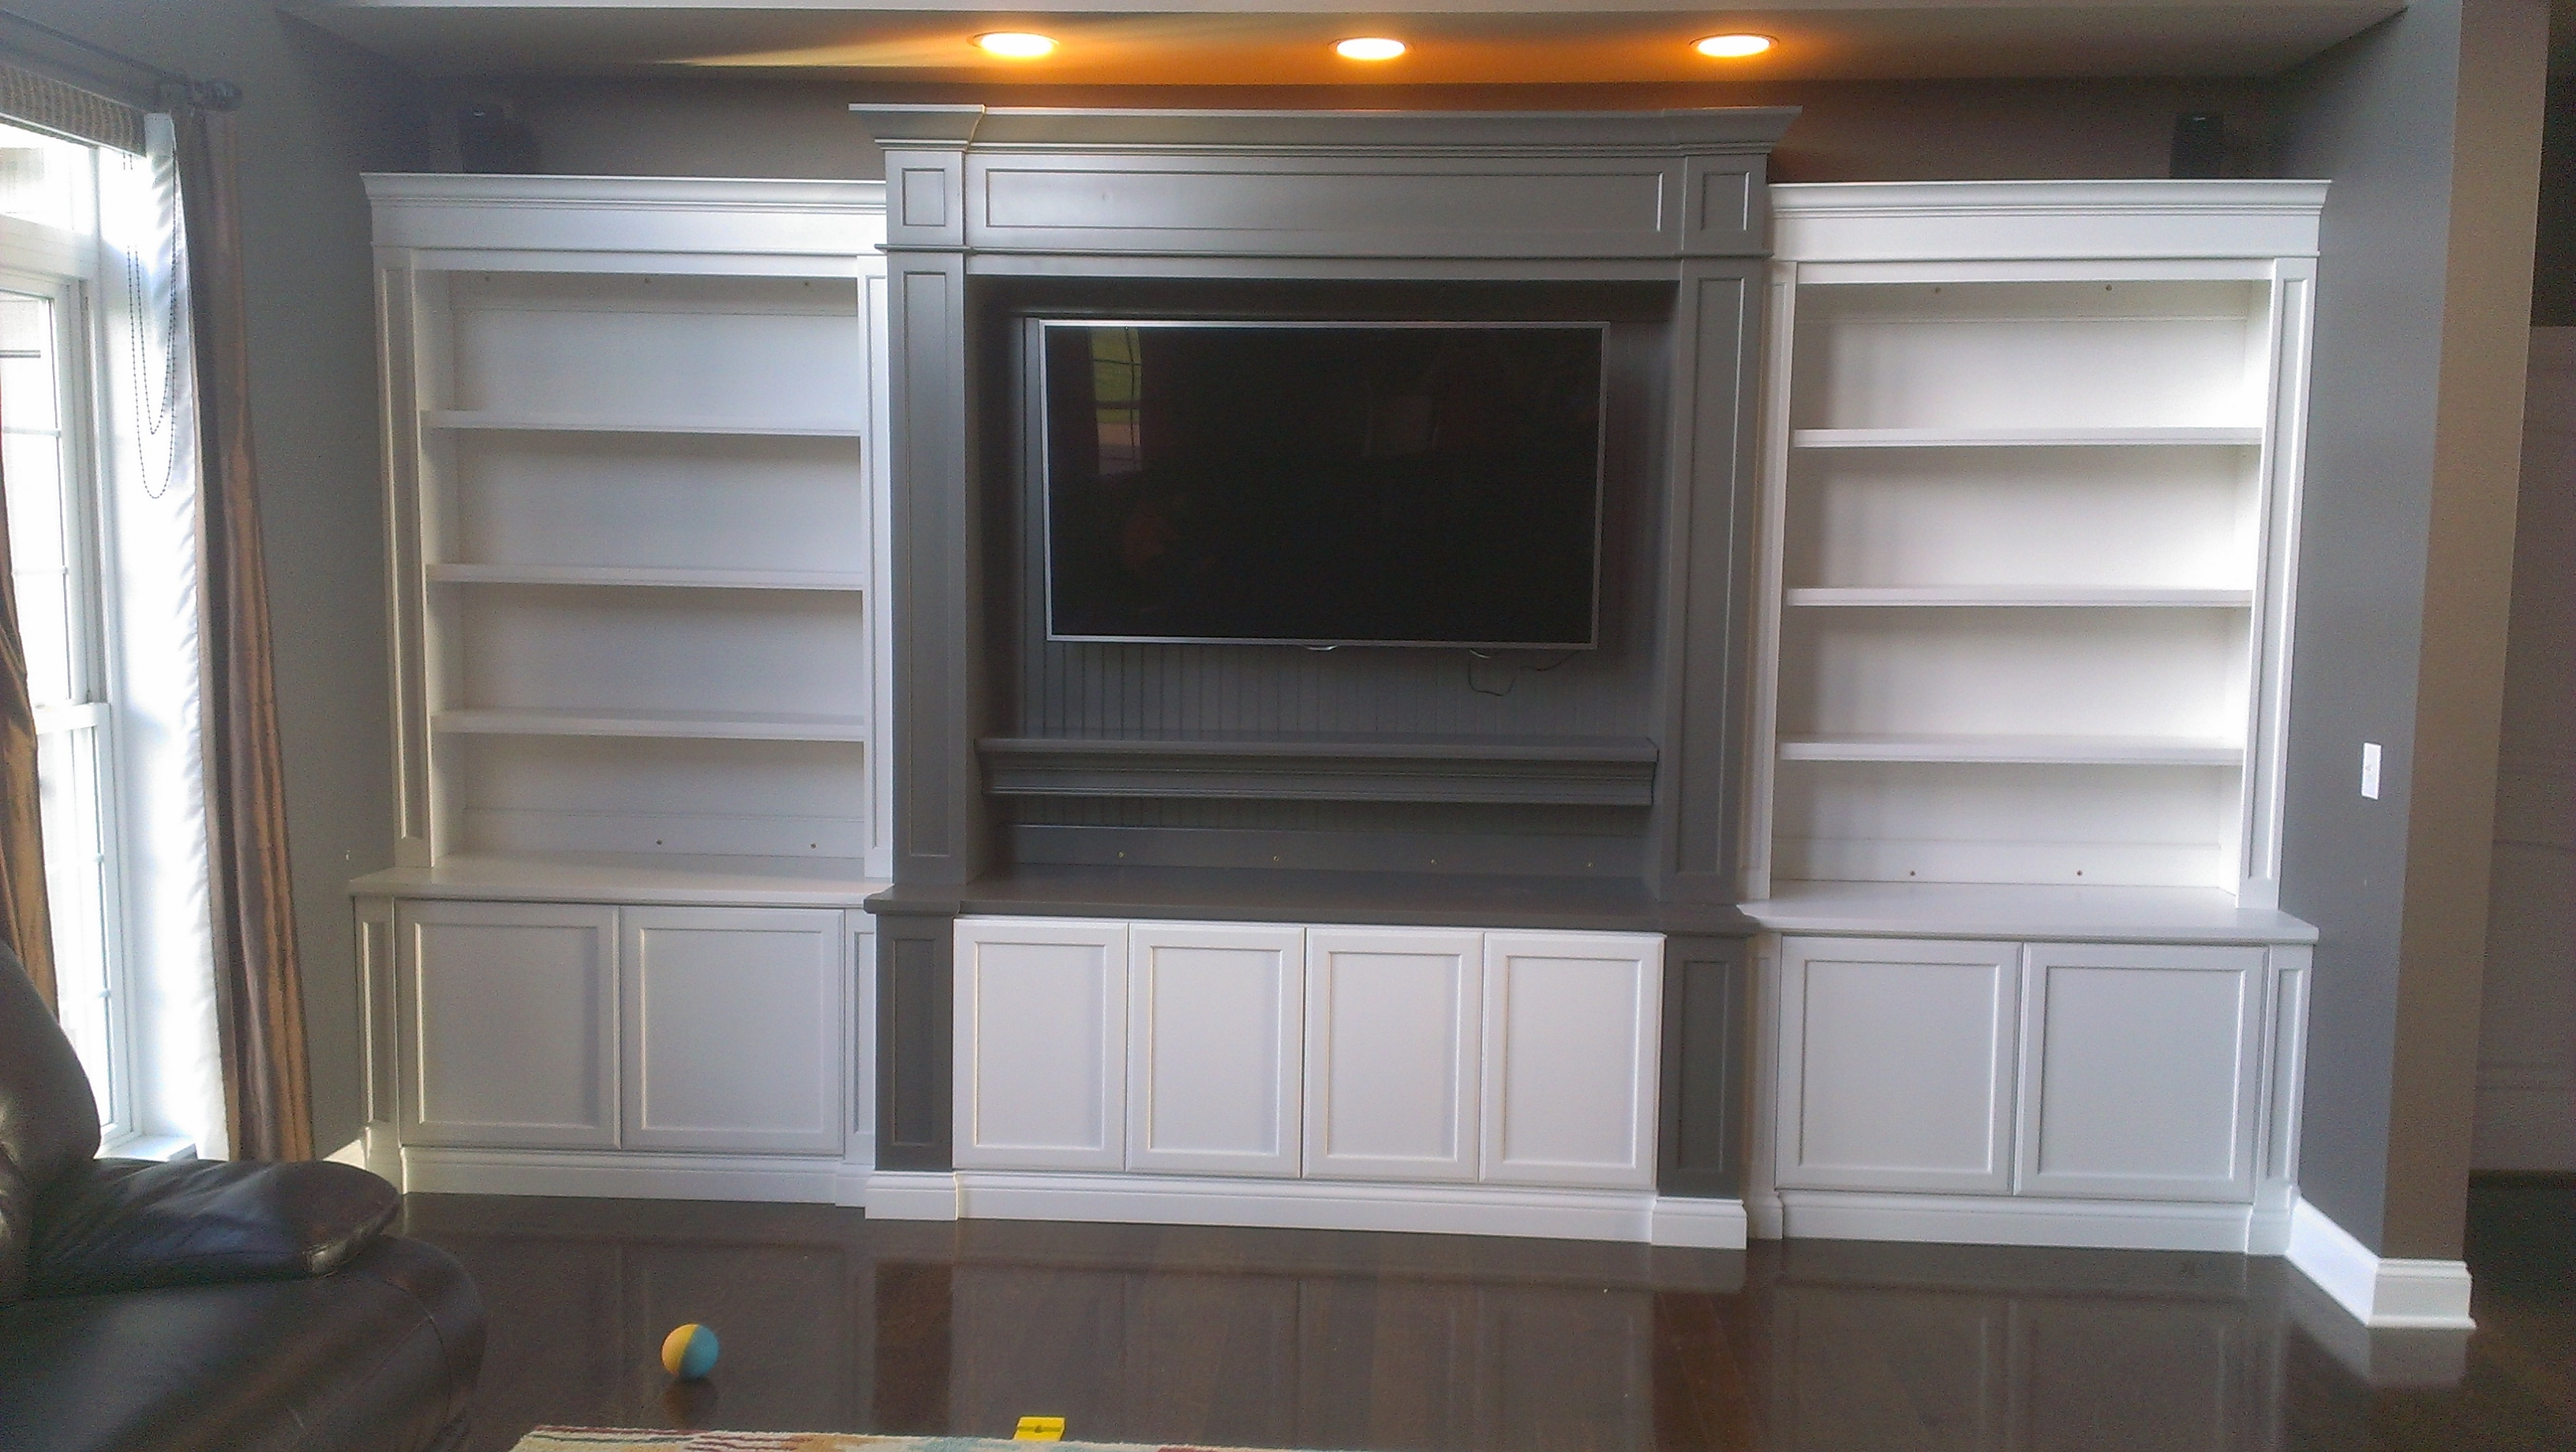 Bookcases C A Custom Woodworking Inc Pertaining To Full Wall Bookcase (View 1 of 15)